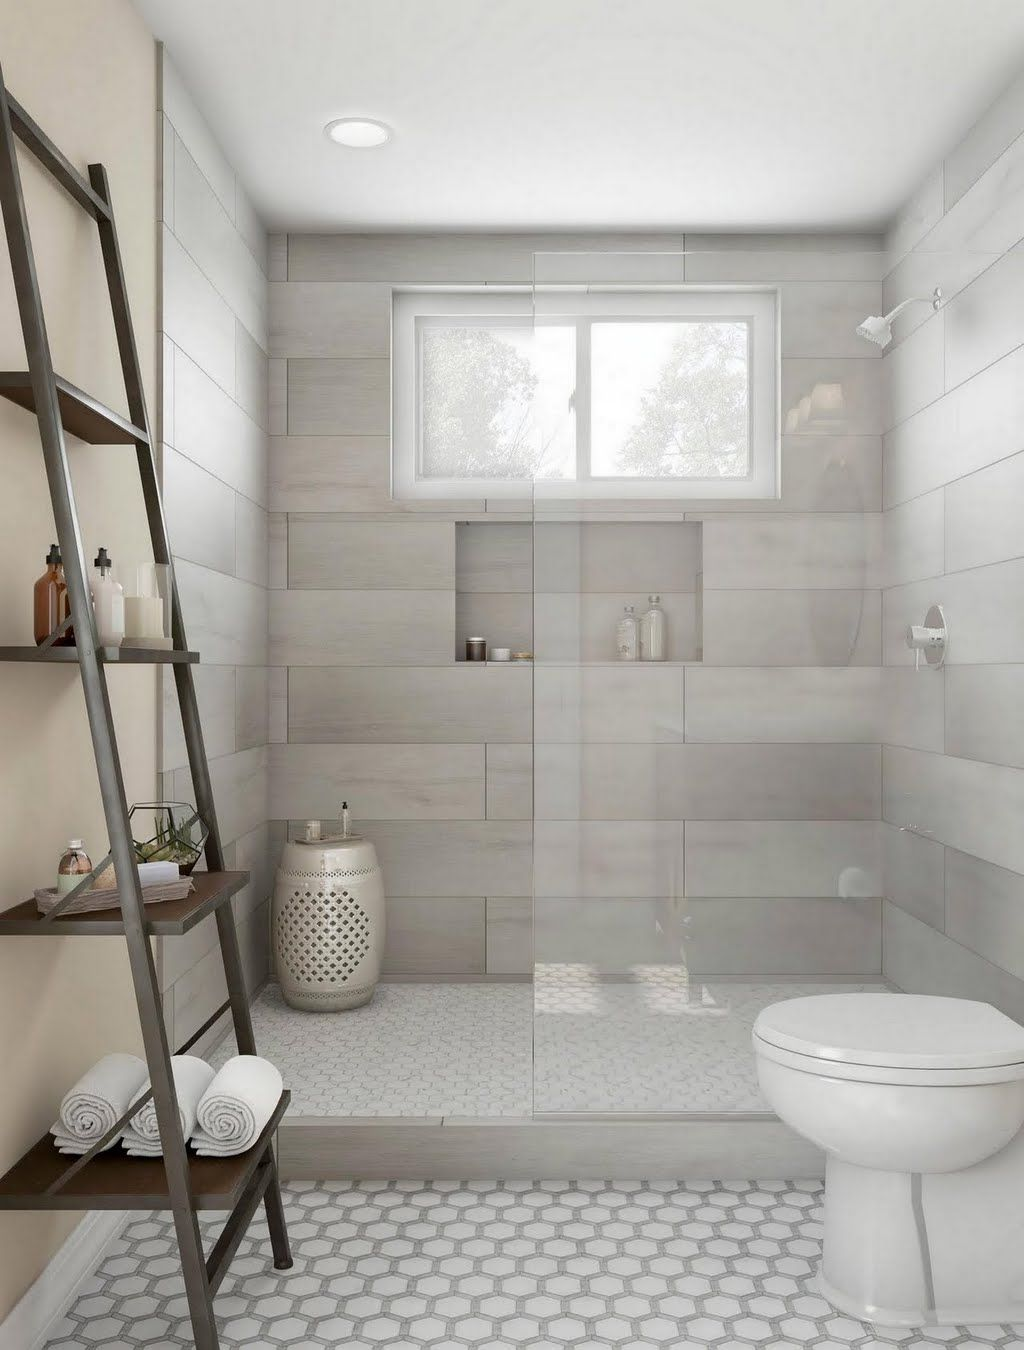 Shop Our Bathroom Department To Customize Your Ash Gradient Walk In Spa Shower Today At The H Master Bathroom Shower Bathroom Remodel Shower Bathrooms Remodel